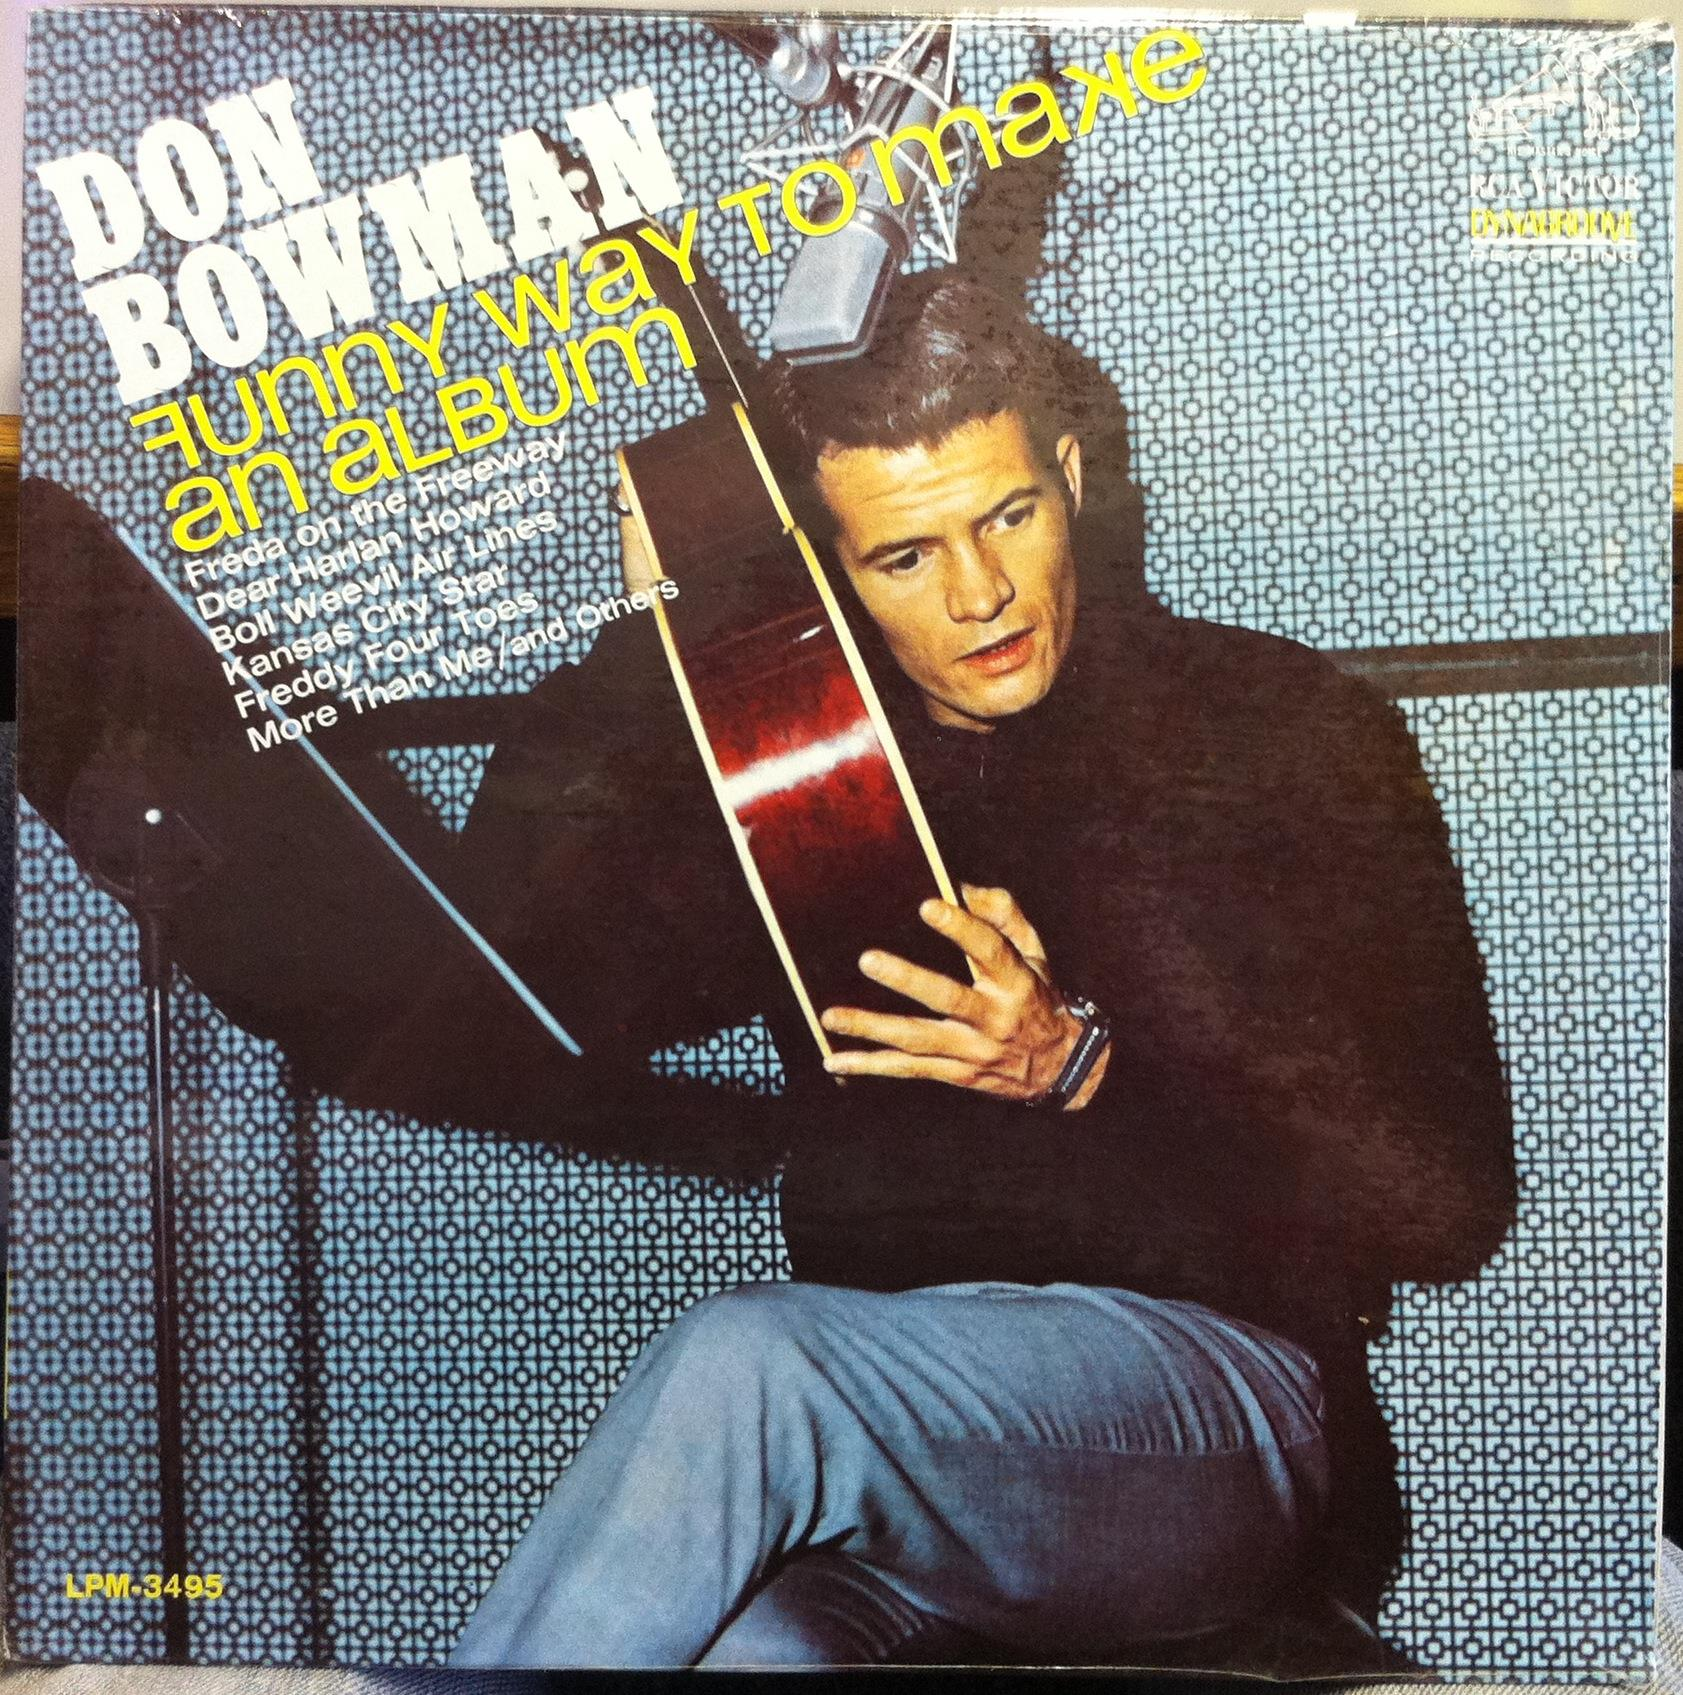 Don Bowman Funny Way To Make A Album Lp Sealed Lpm 3495 Vinyl 1966 Record